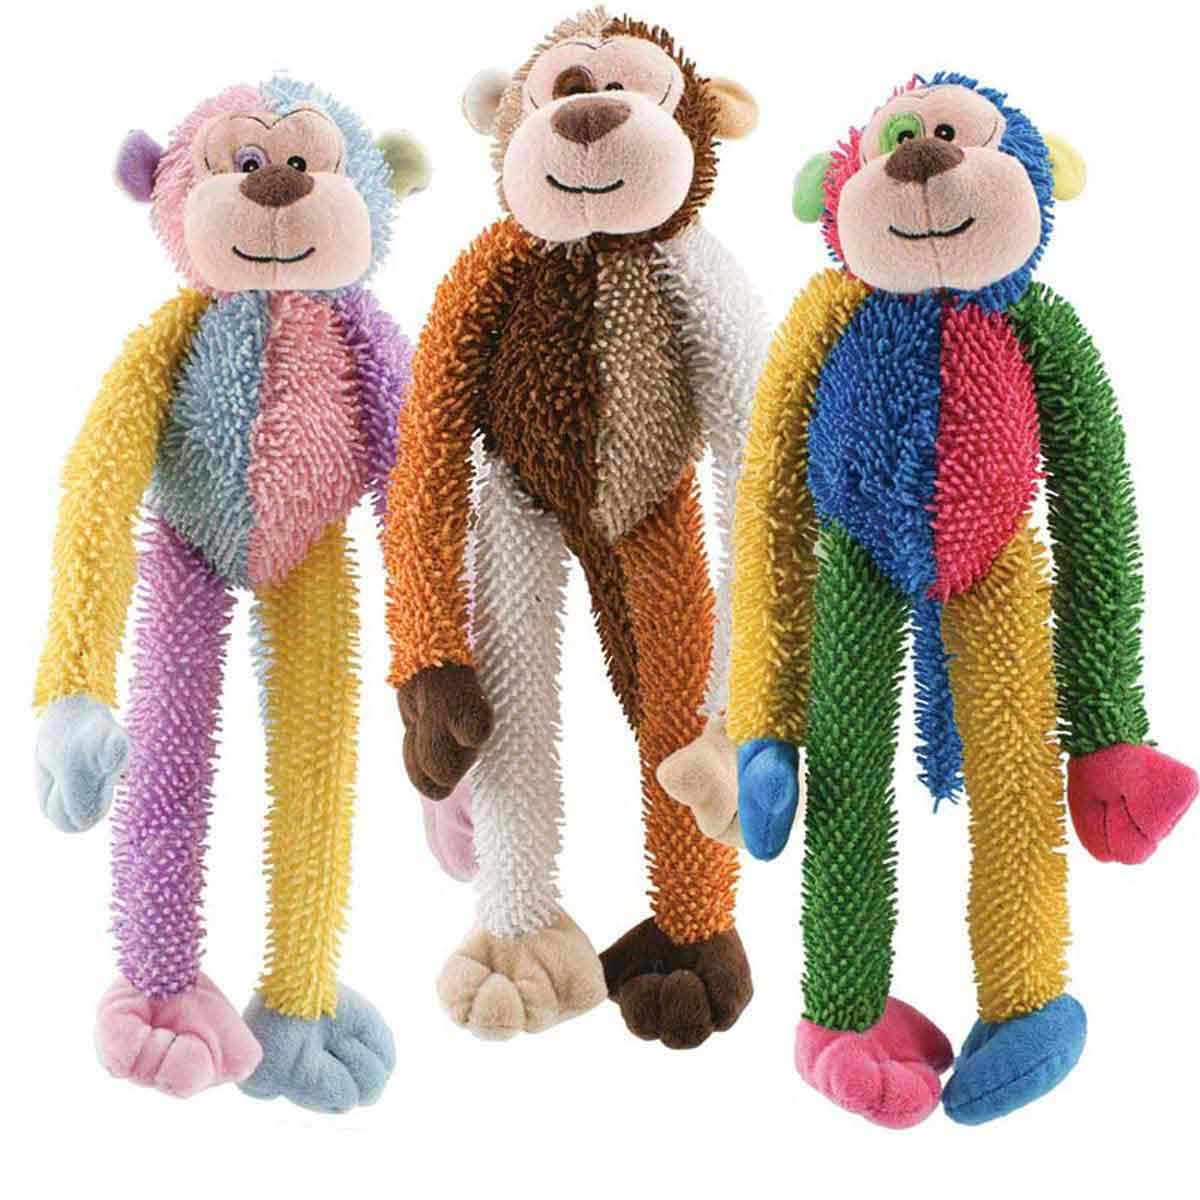 Multipet Multi-Crew Monkey Toy for Dogs 17 inch